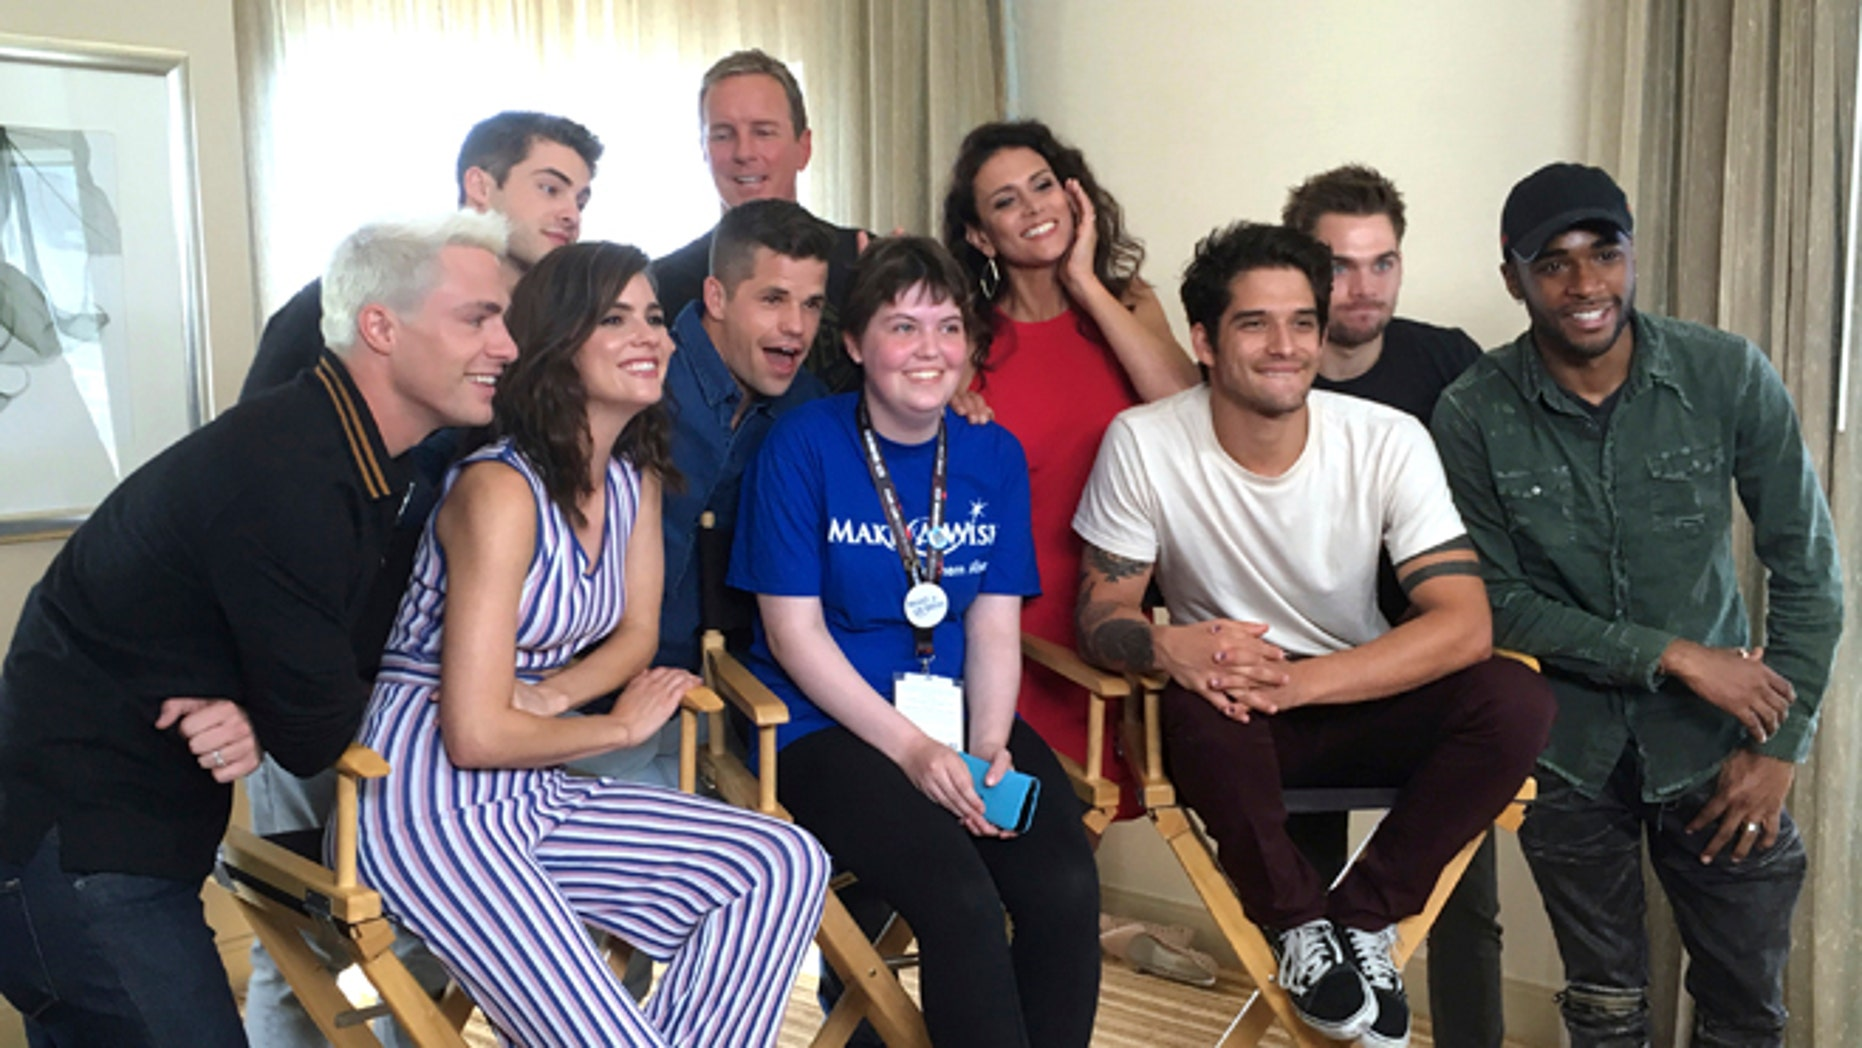 """Sydney Lang met with cast members from """"Teen Wolf"""" during a meet-and-greet organized by the Make-A-Wish Foundation at Comic-Con International."""